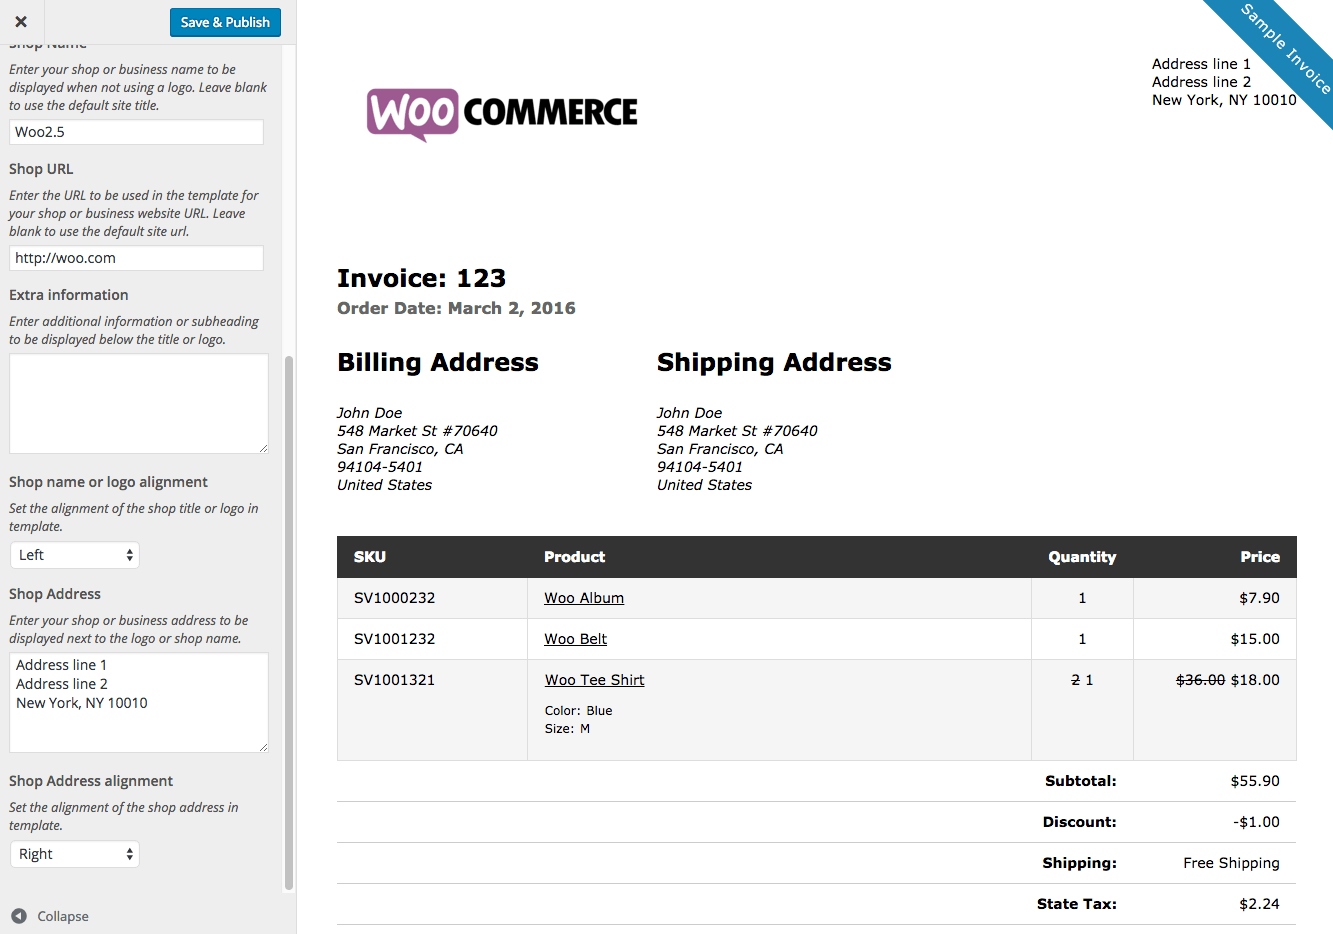 Hius  Terrific Print Invoices Amp Packing Lists  Woocommerce With Heavenly Woocommerce Print Invoices  Packing Lists Customizer With Delightful Copy Of Invoice Template Also Wordpress Invoicing In Addition Invoice Template Pdf Editable And Invoice Program Free As Well As Honda Accord  Invoice Price Additionally Invoice Generator Online From Woocommercecom With Hius  Heavenly Print Invoices Amp Packing Lists  Woocommerce With Delightful Woocommerce Print Invoices  Packing Lists Customizer And Terrific Copy Of Invoice Template Also Wordpress Invoicing In Addition Invoice Template Pdf Editable From Woocommercecom